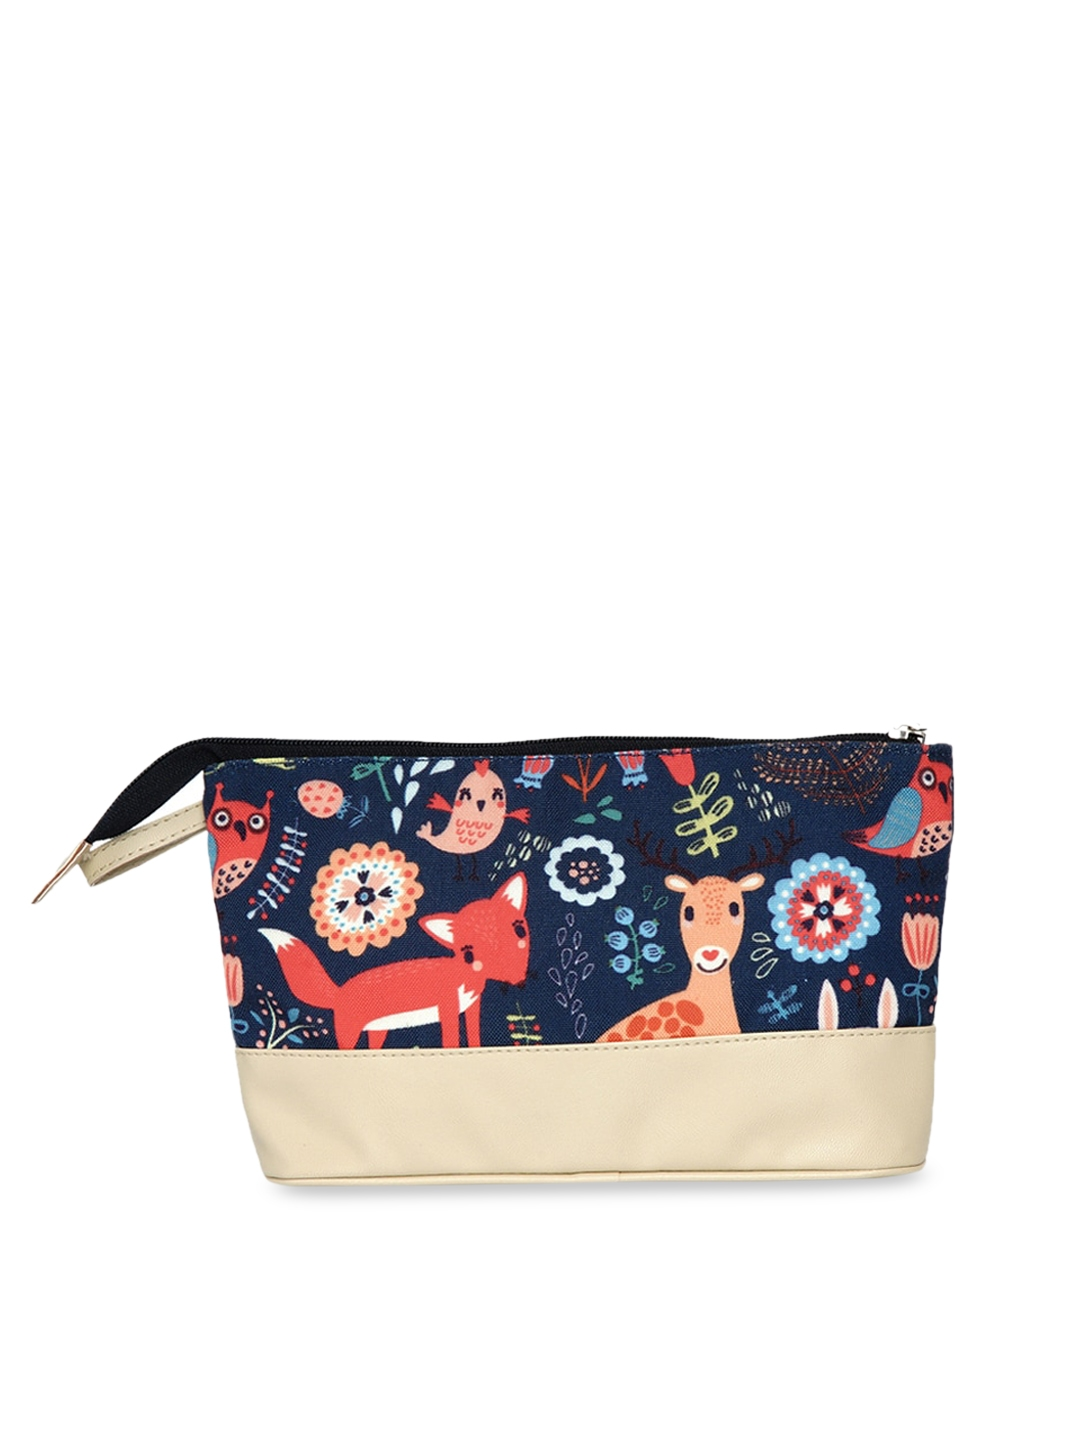 Anekaant Women Navy Blue   Beige Printed Modish Quirky Cosmetic Pouch